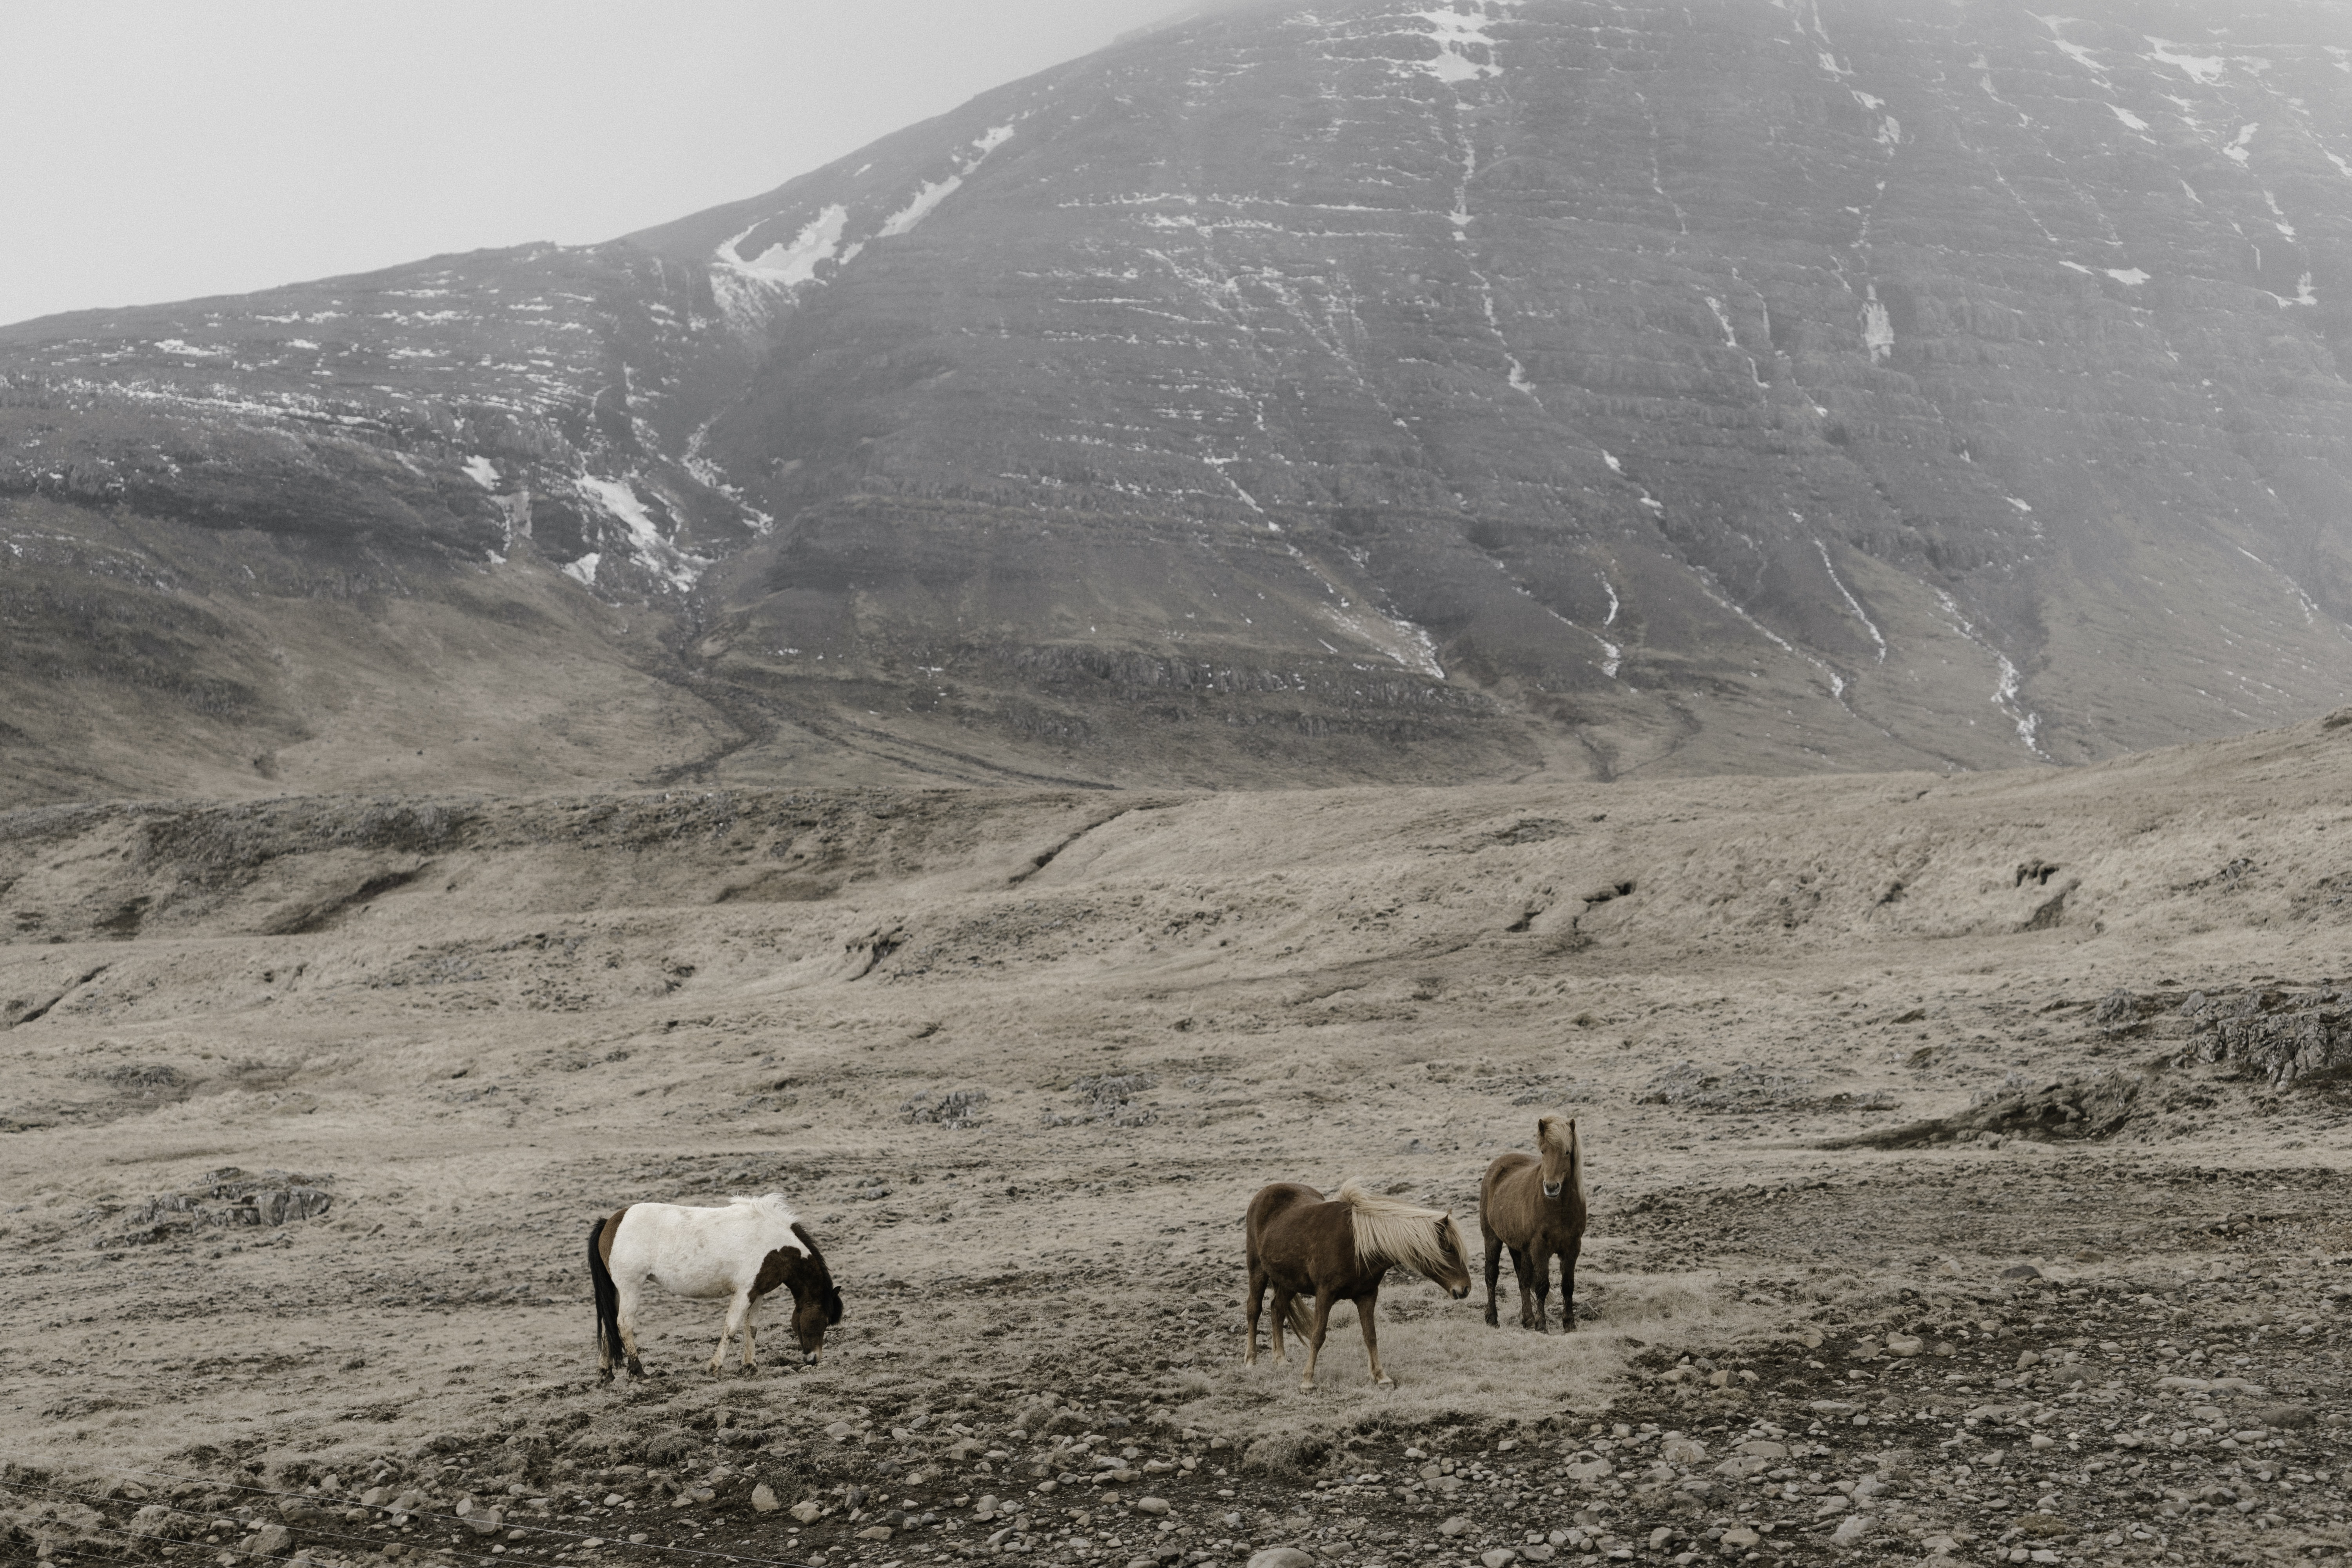 Three horses grazing on a rocky plain at the foot of a mountain